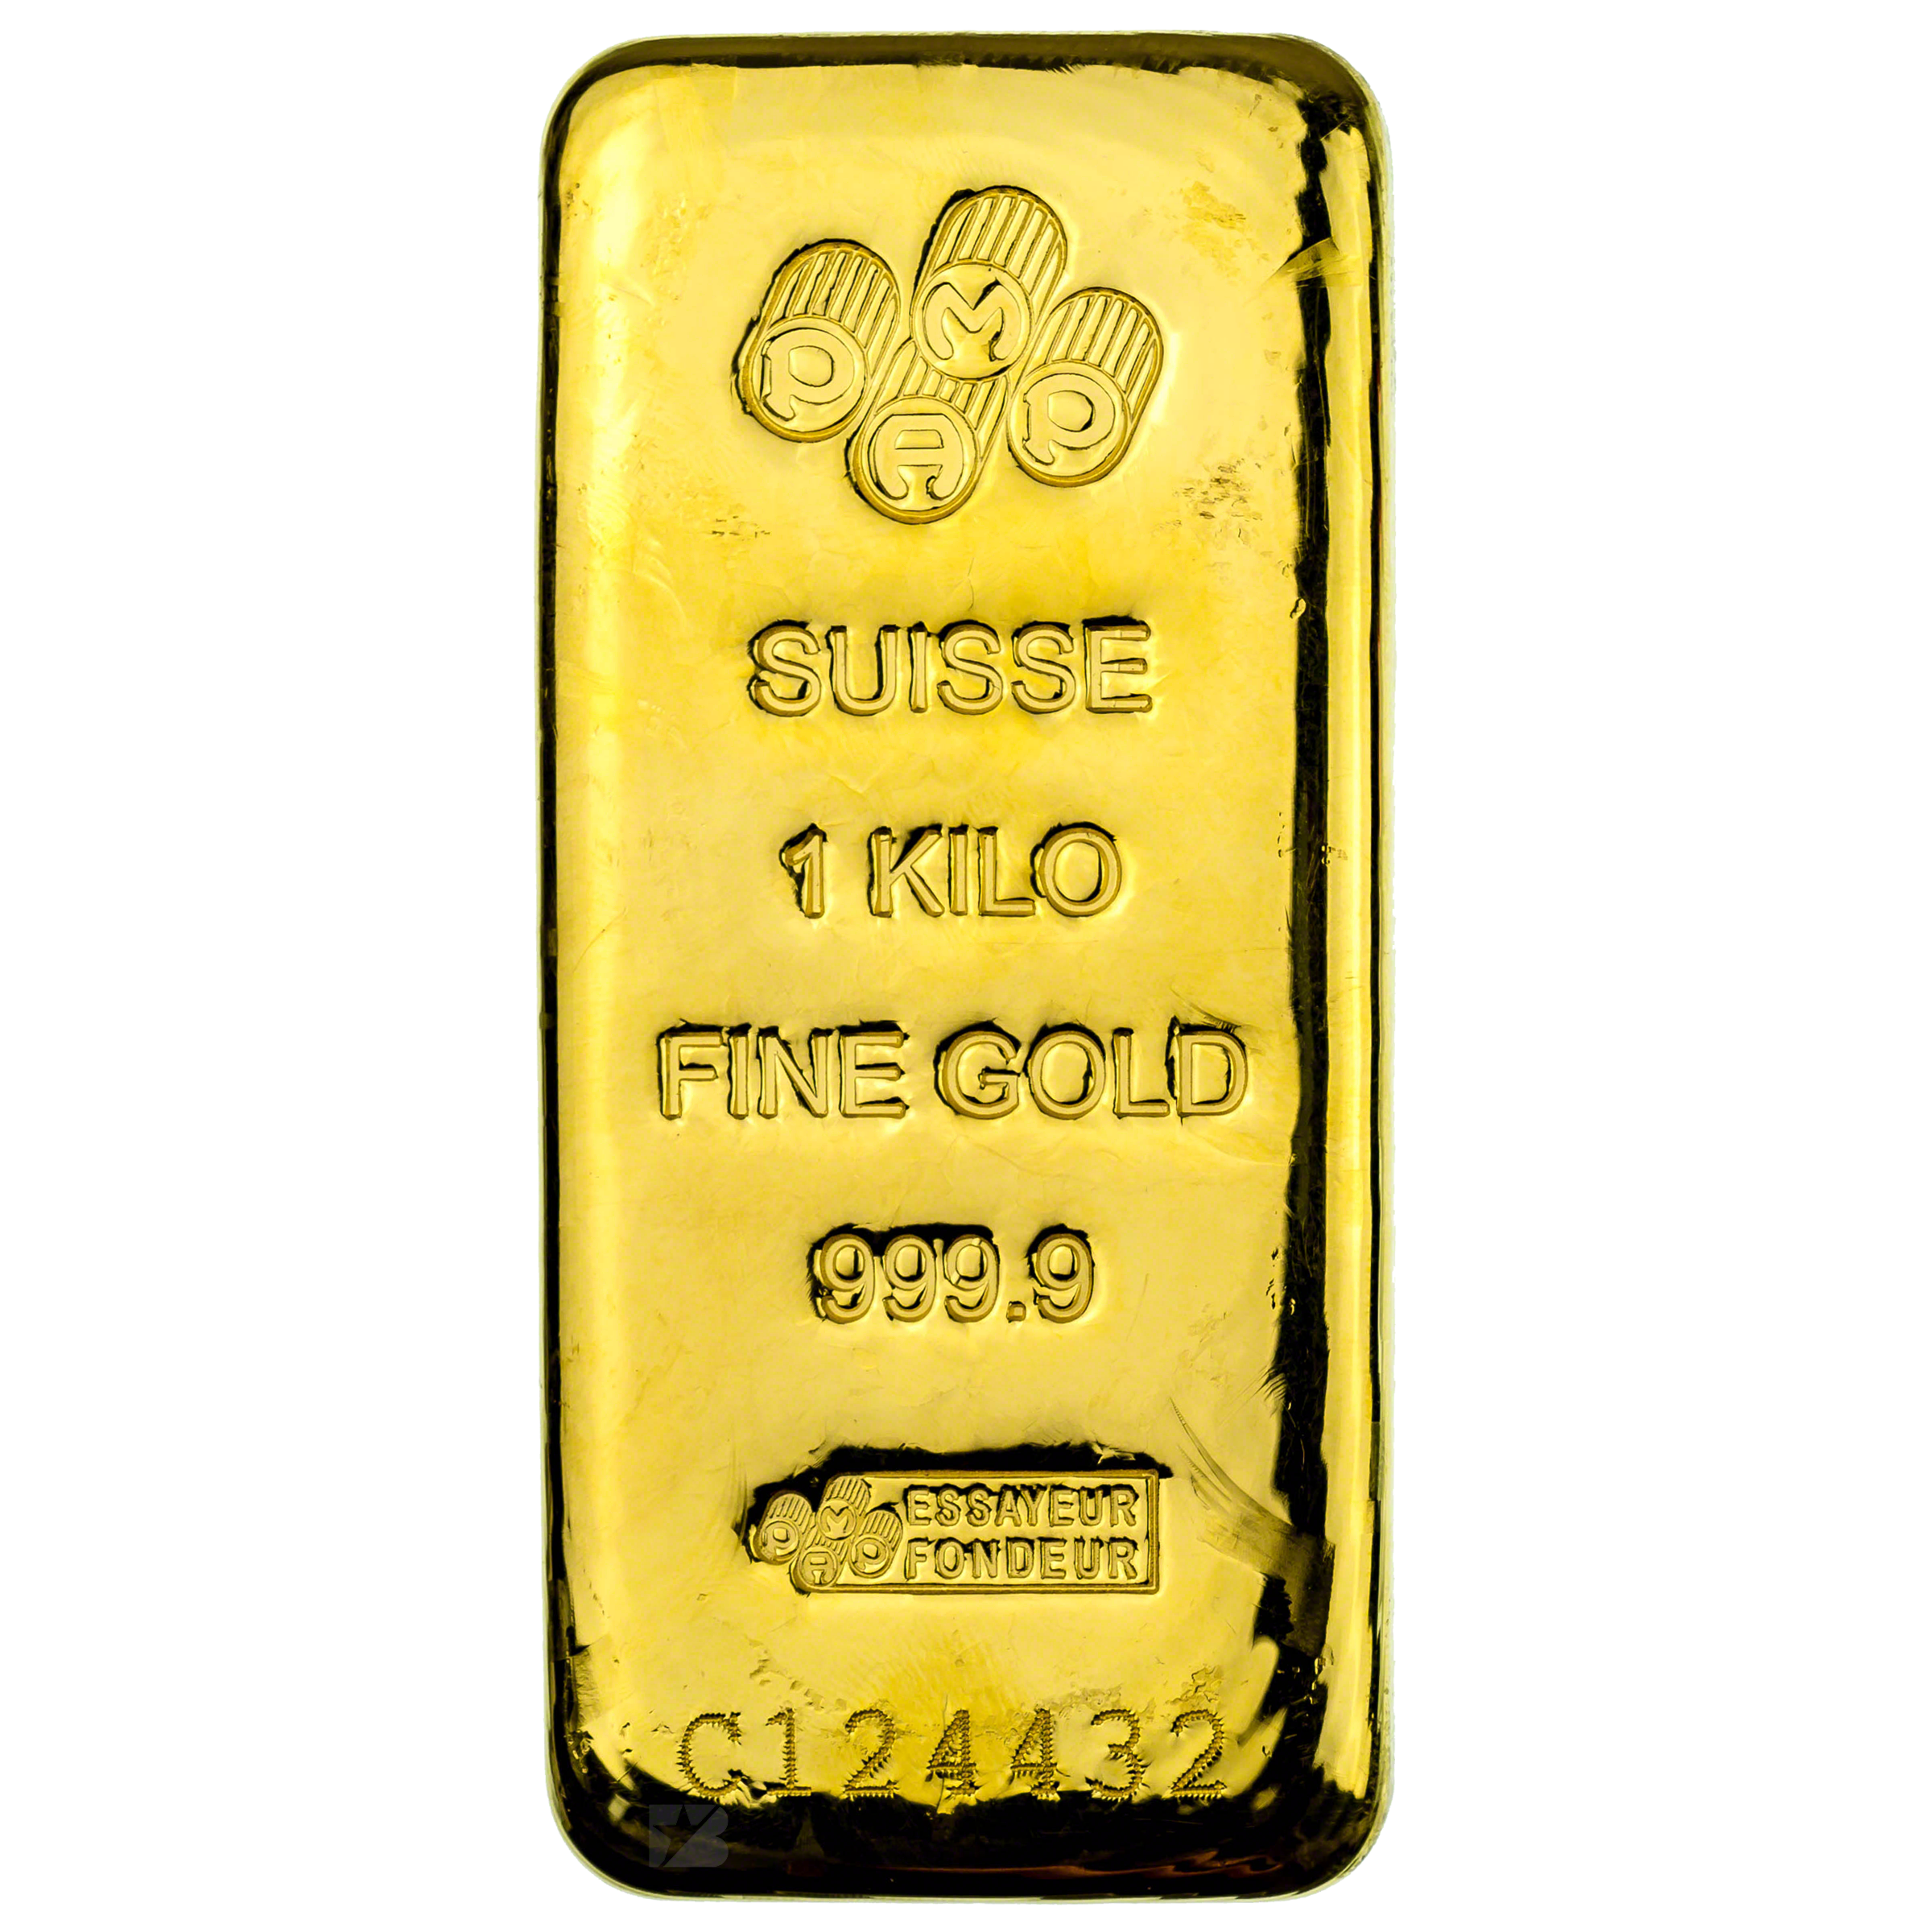 About $42,000 worth of fine gold! Yes please!